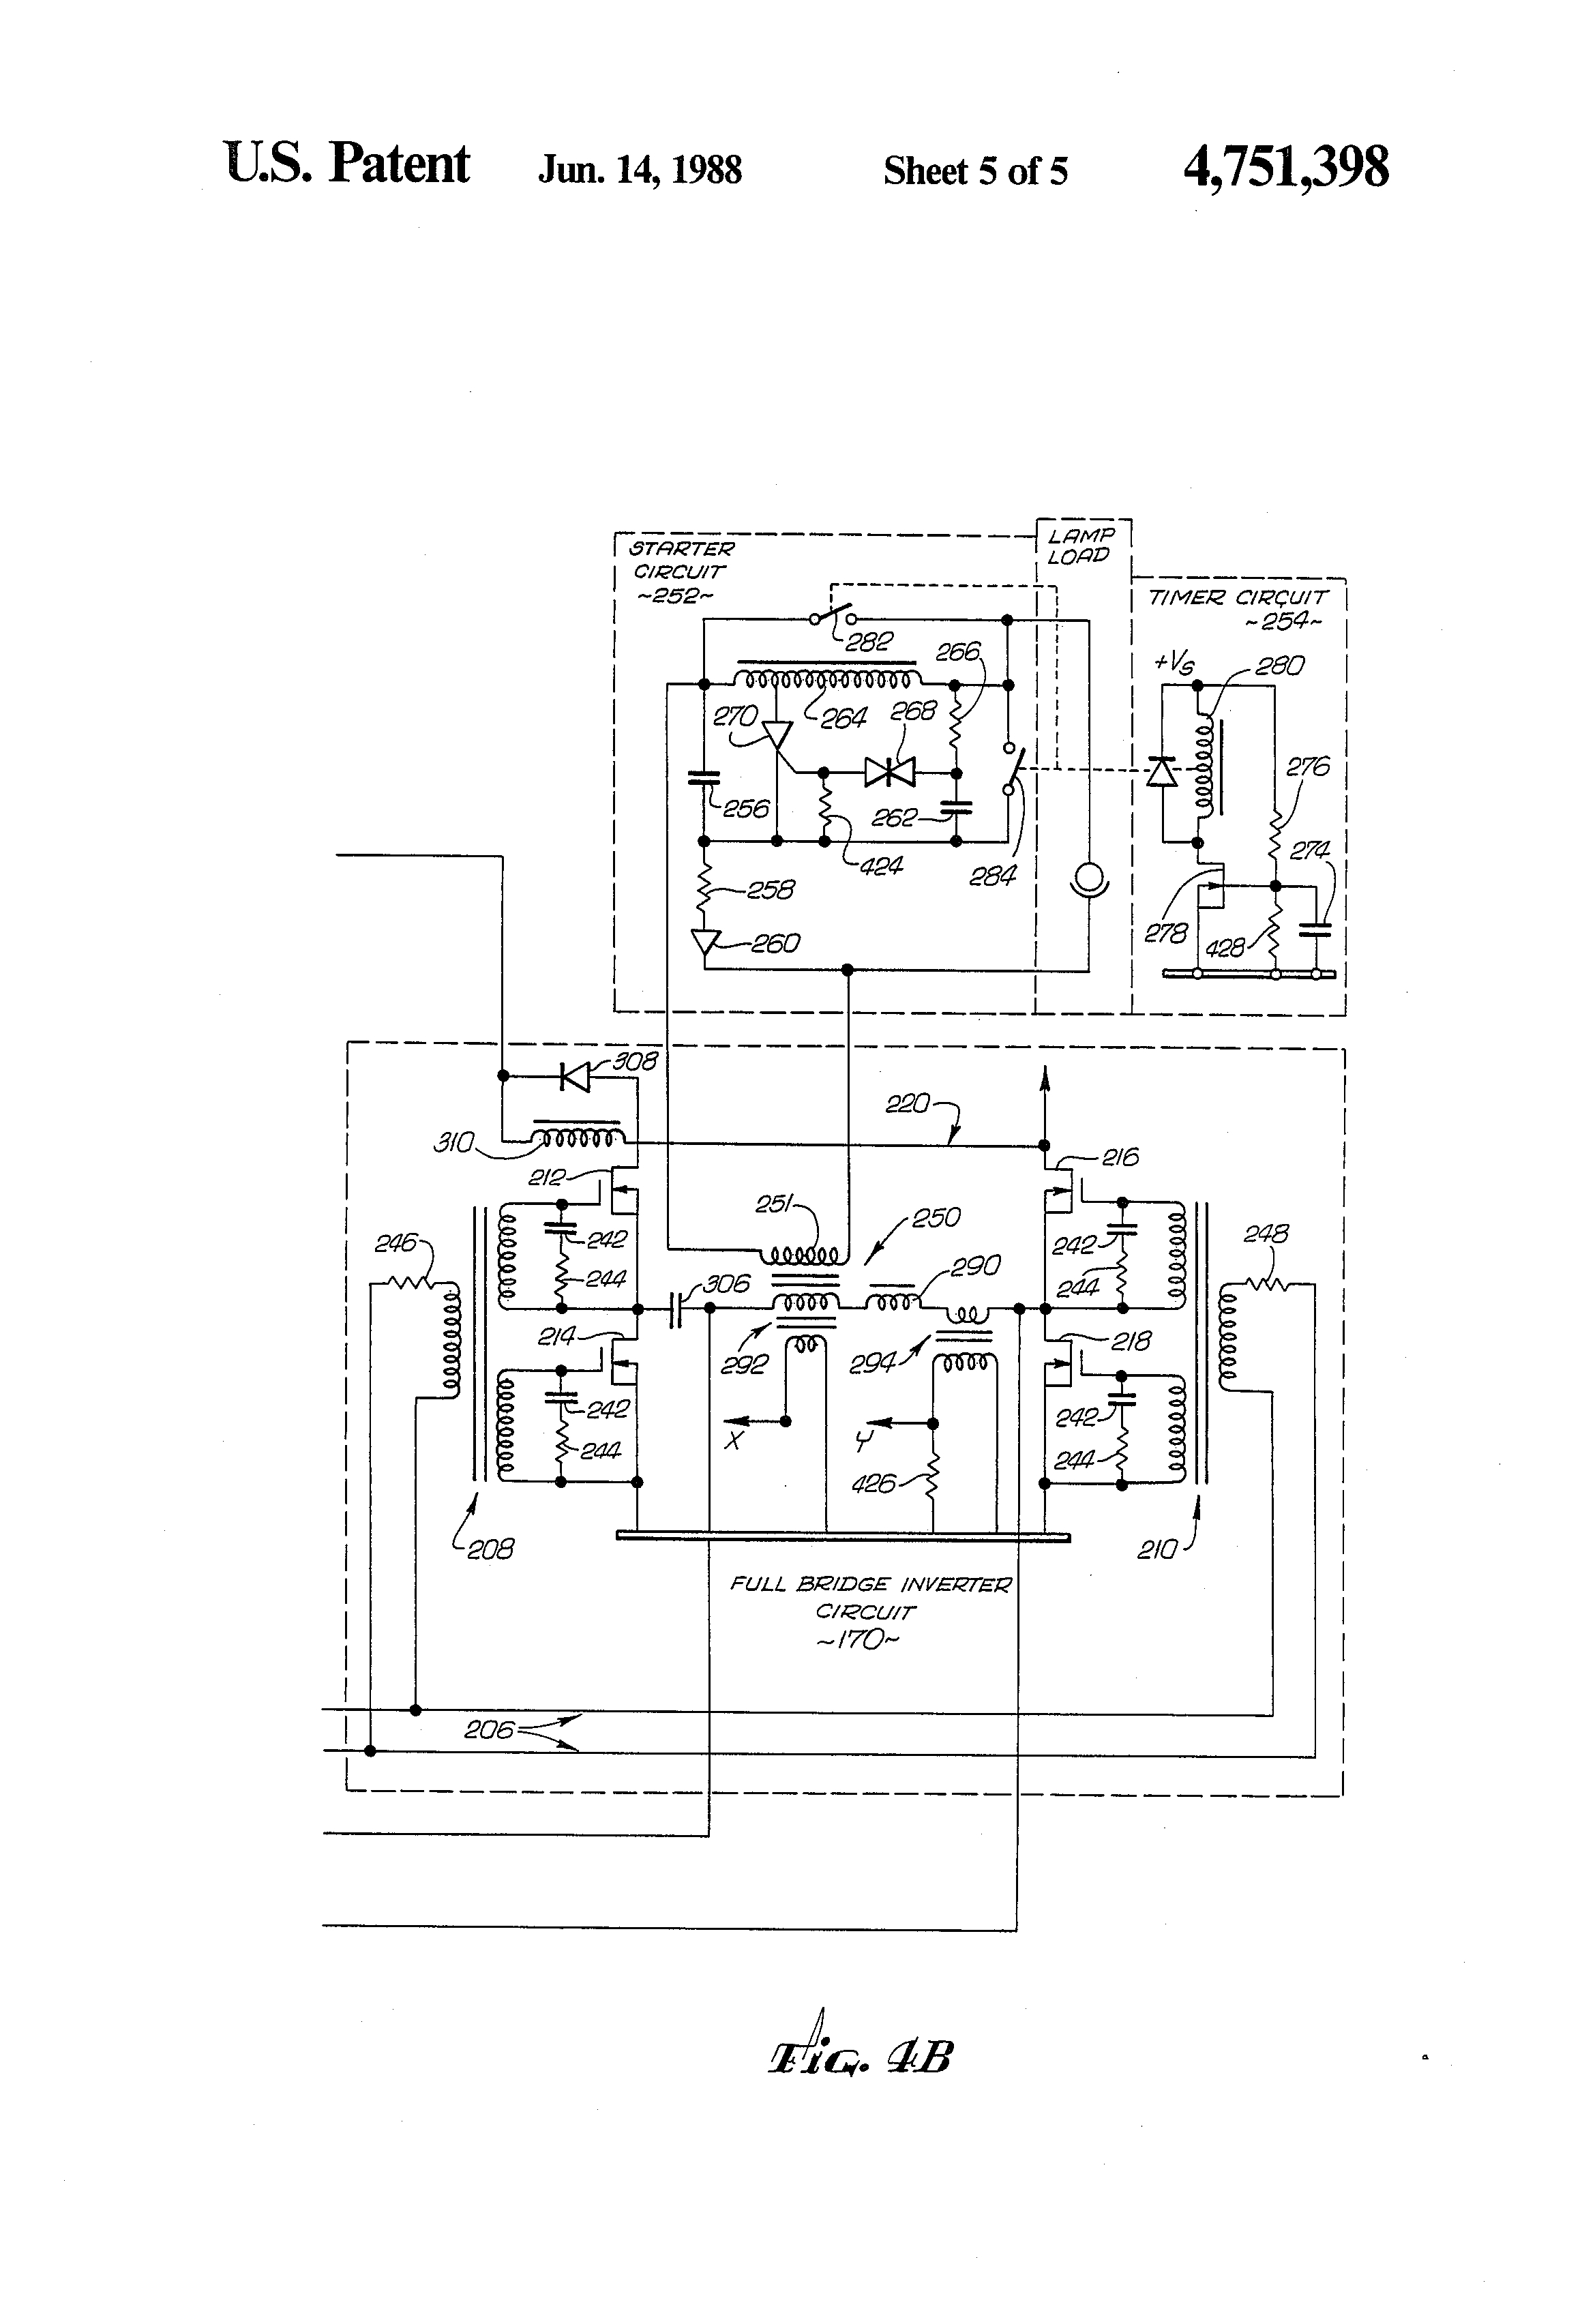 bodine b100 emergency ballast wiring diagram Collection-Bodine B100 Emergency Ballast Wiring Diagram Tridonic Emergency Ballast Wiring Diagram Wiring solutions 14-t